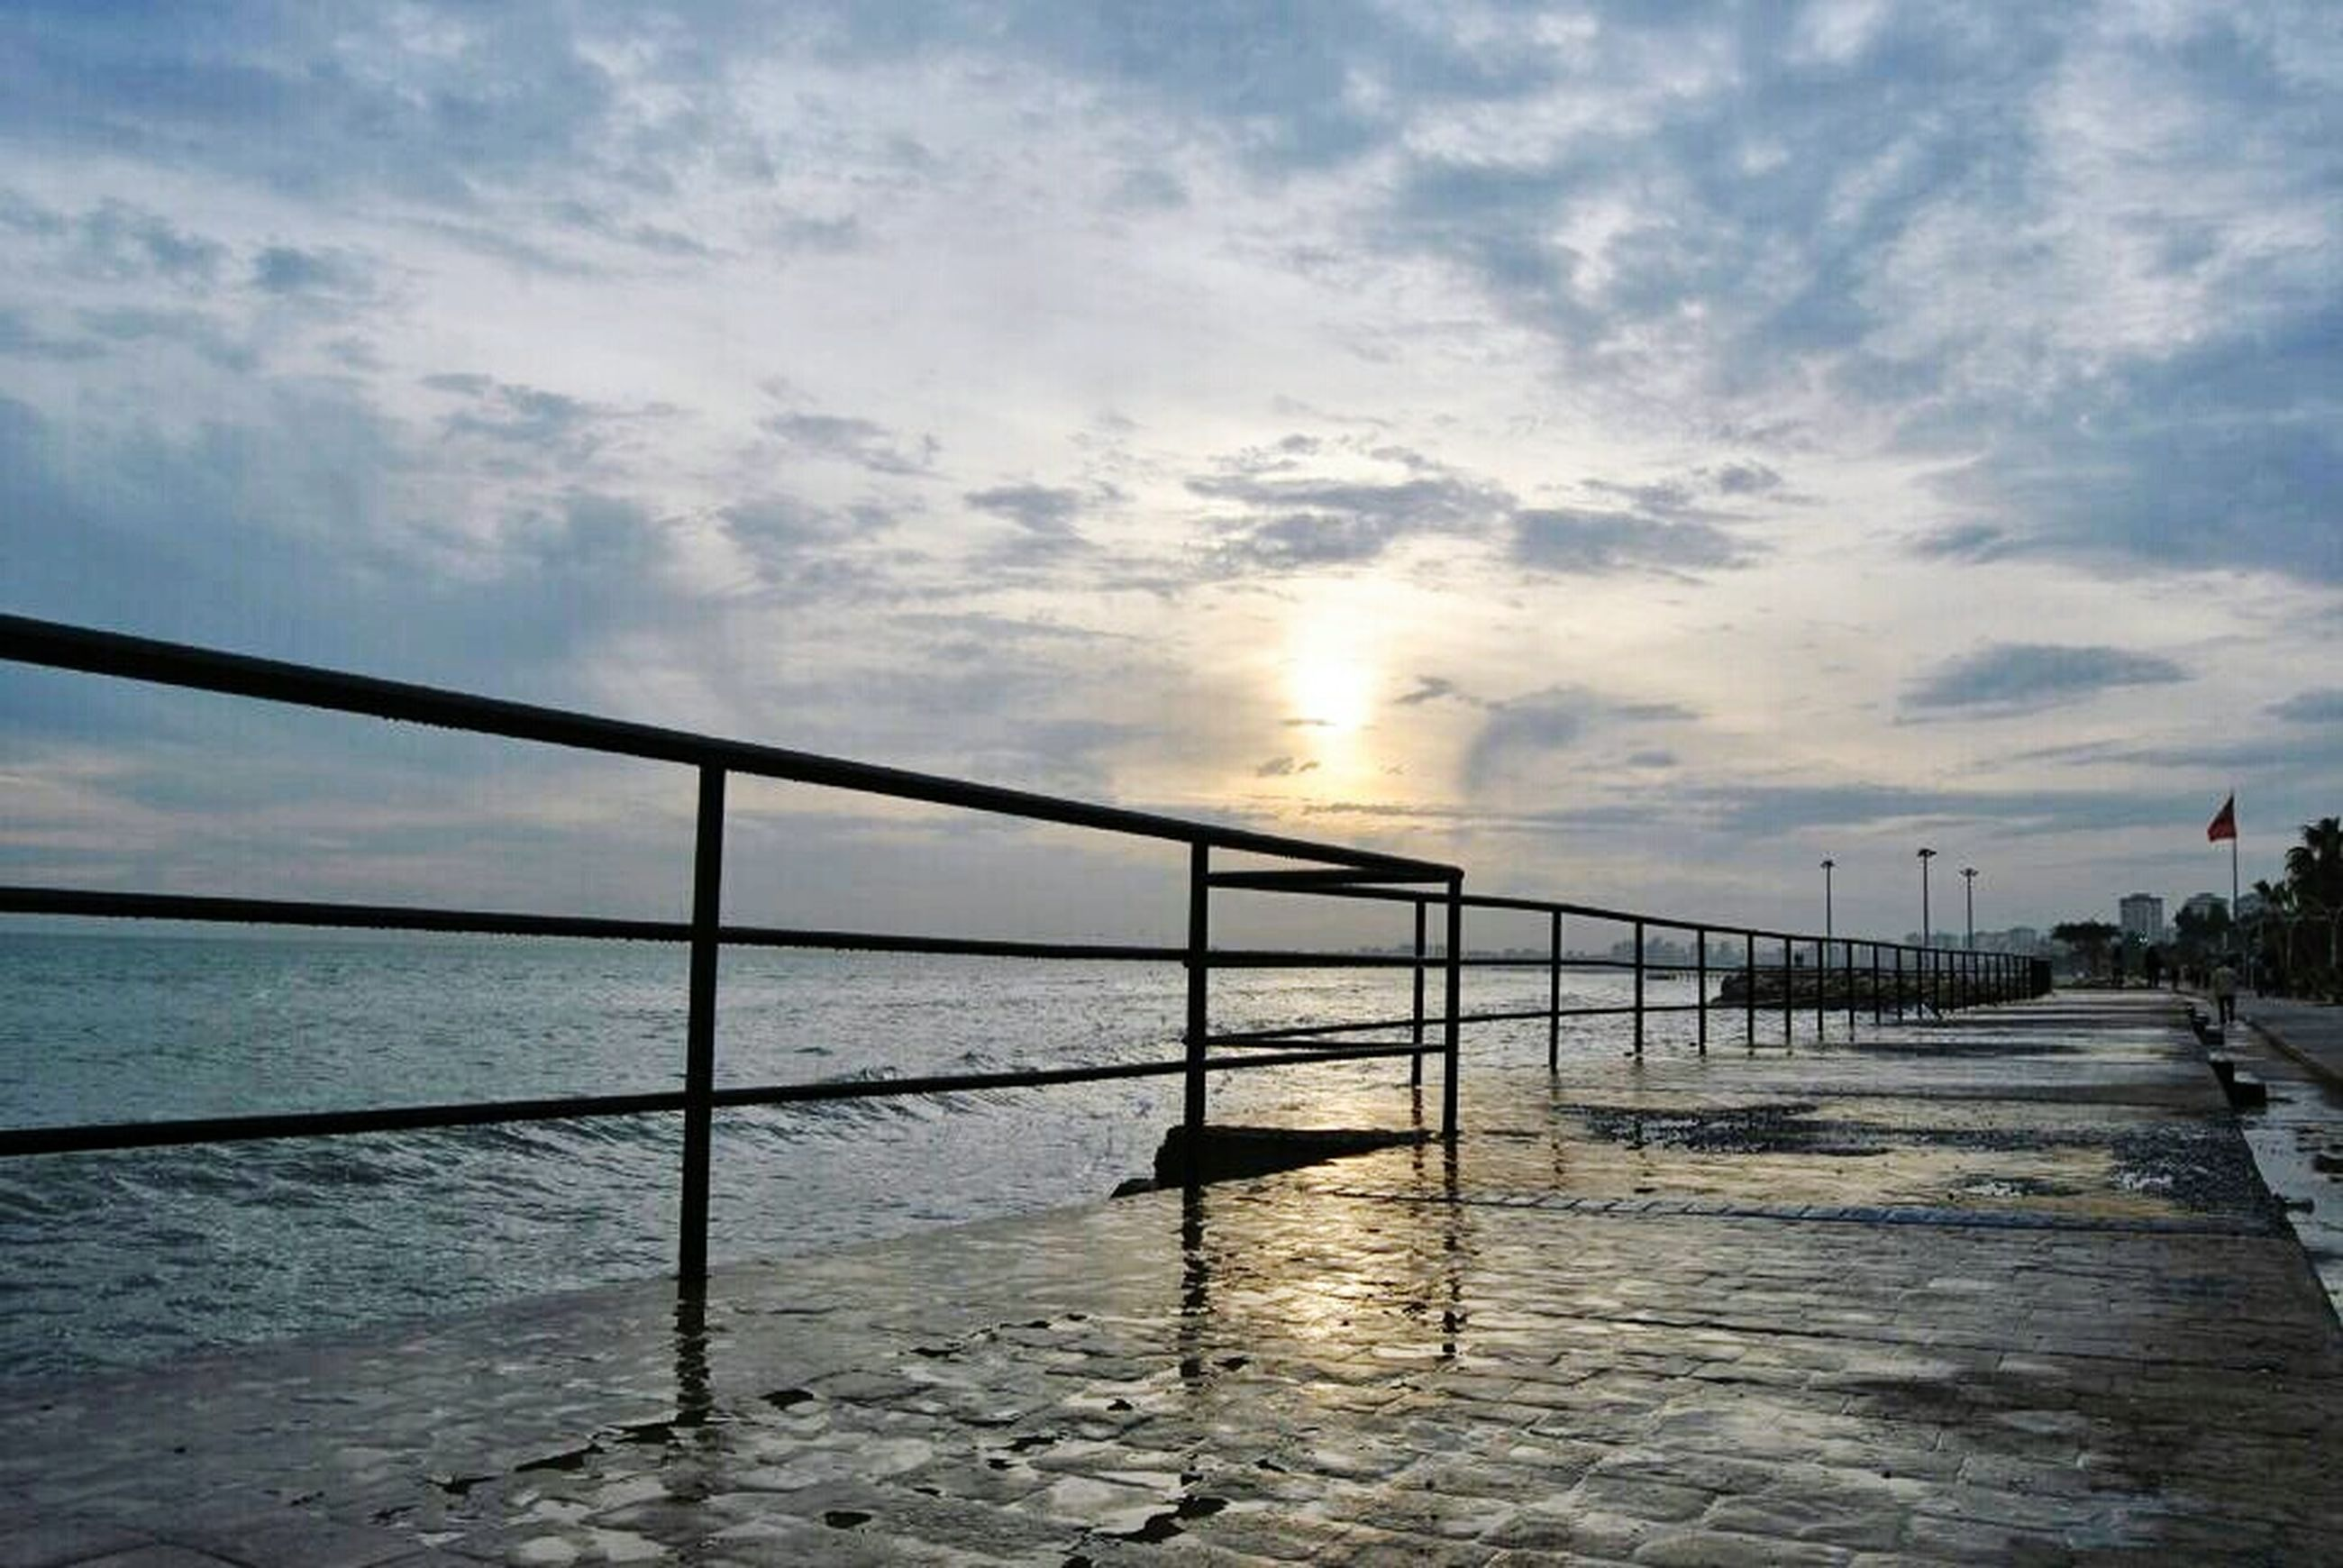 sky, water, cloud - sky, railing, sea, pier, tranquility, sunset, cloudy, scenics, sun, tranquil scene, nature, built structure, sunlight, beauty in nature, horizon over water, cloud, reflection, sunbeam